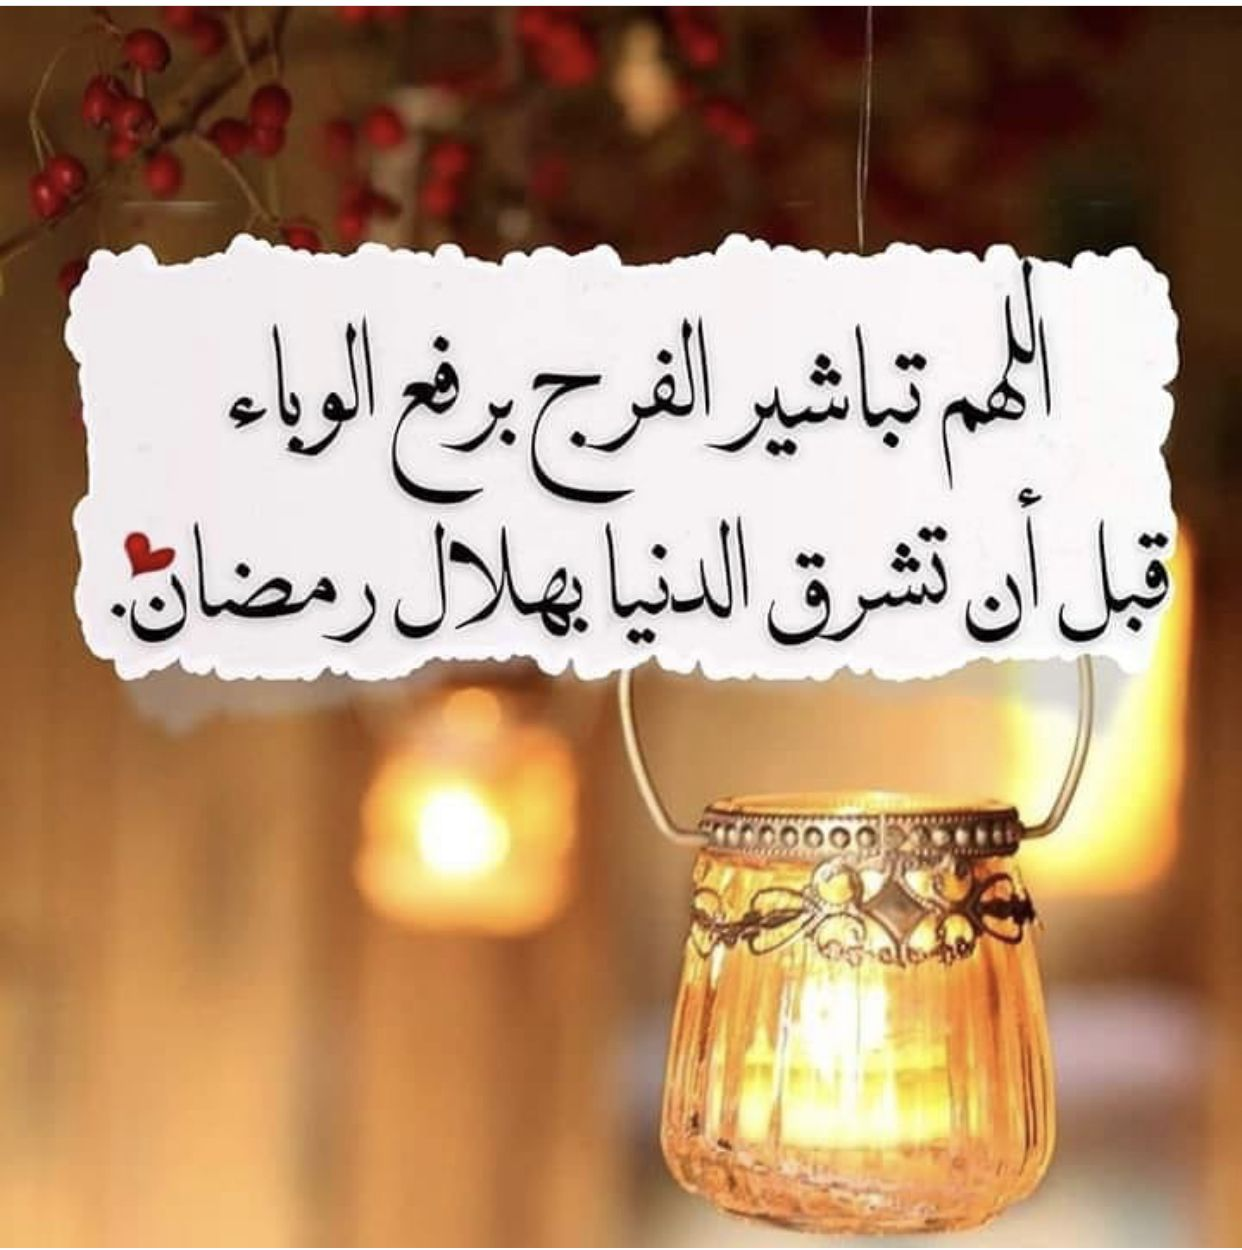 Pin By Dr Ashraf Abdelhakim On دعاء In 2020 Islamic Phrases Ramadan Quotes Quran Quotes Verses